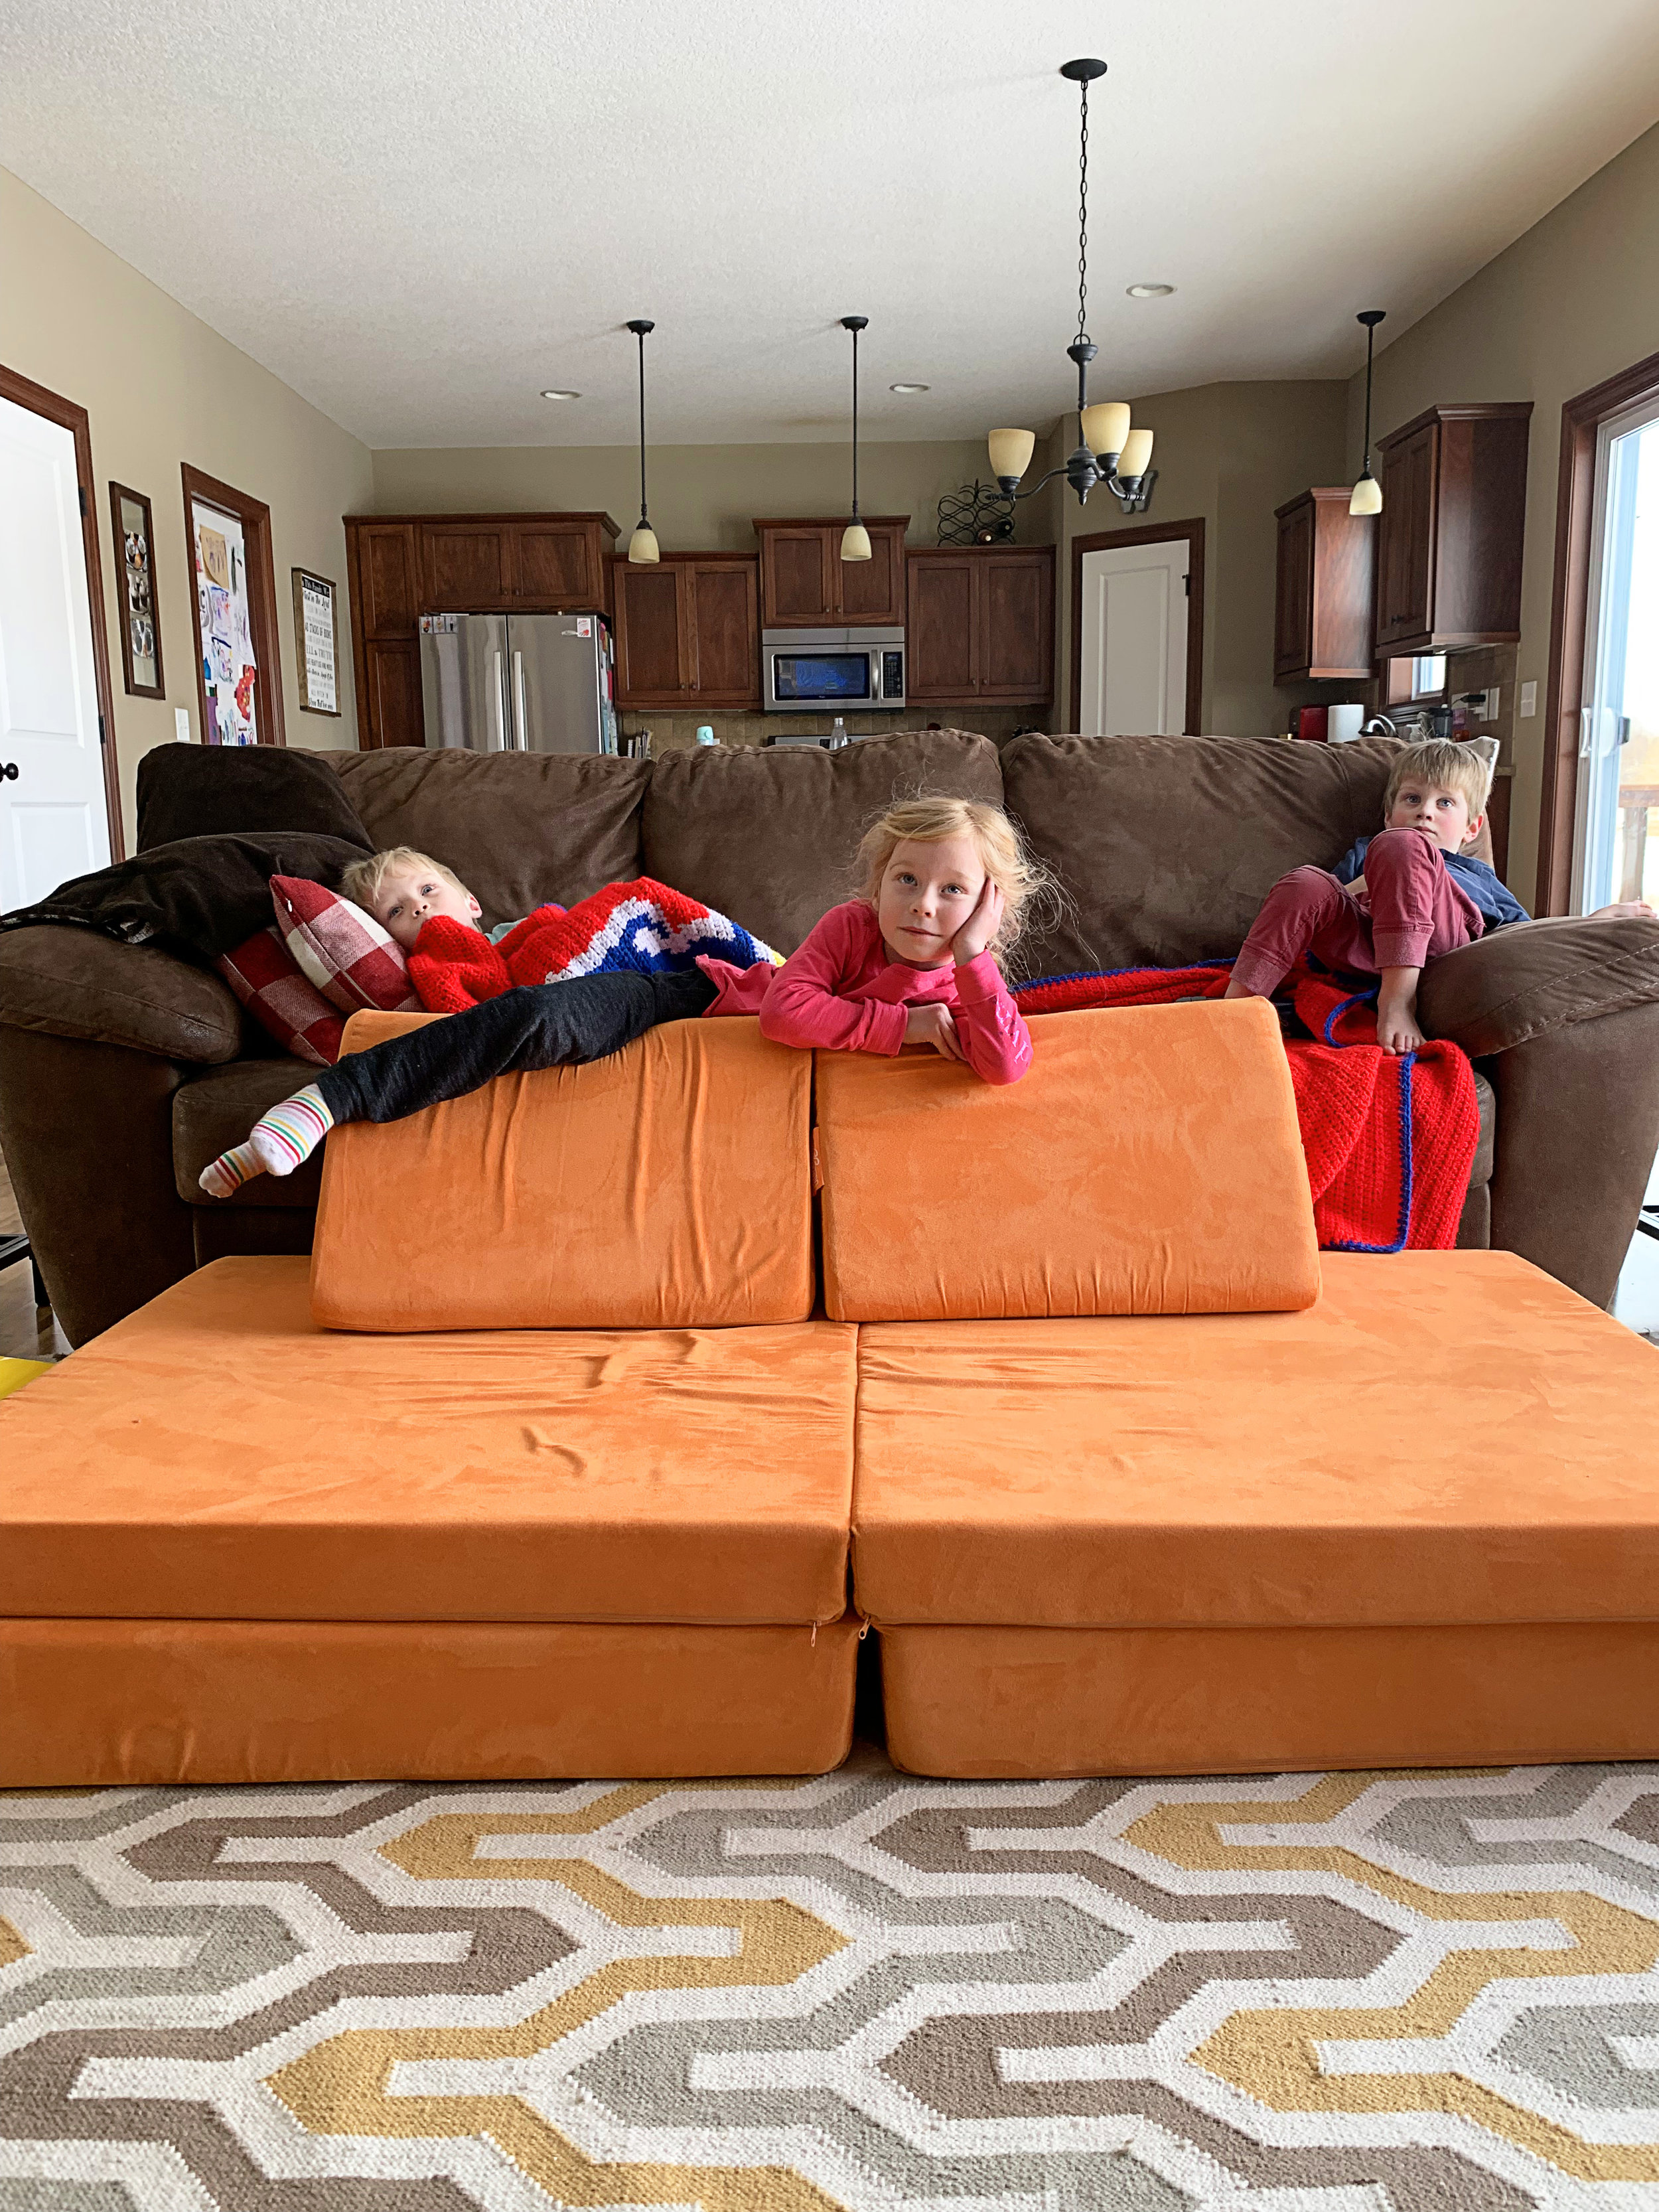 2018 01 31 All Couch 01.jpg